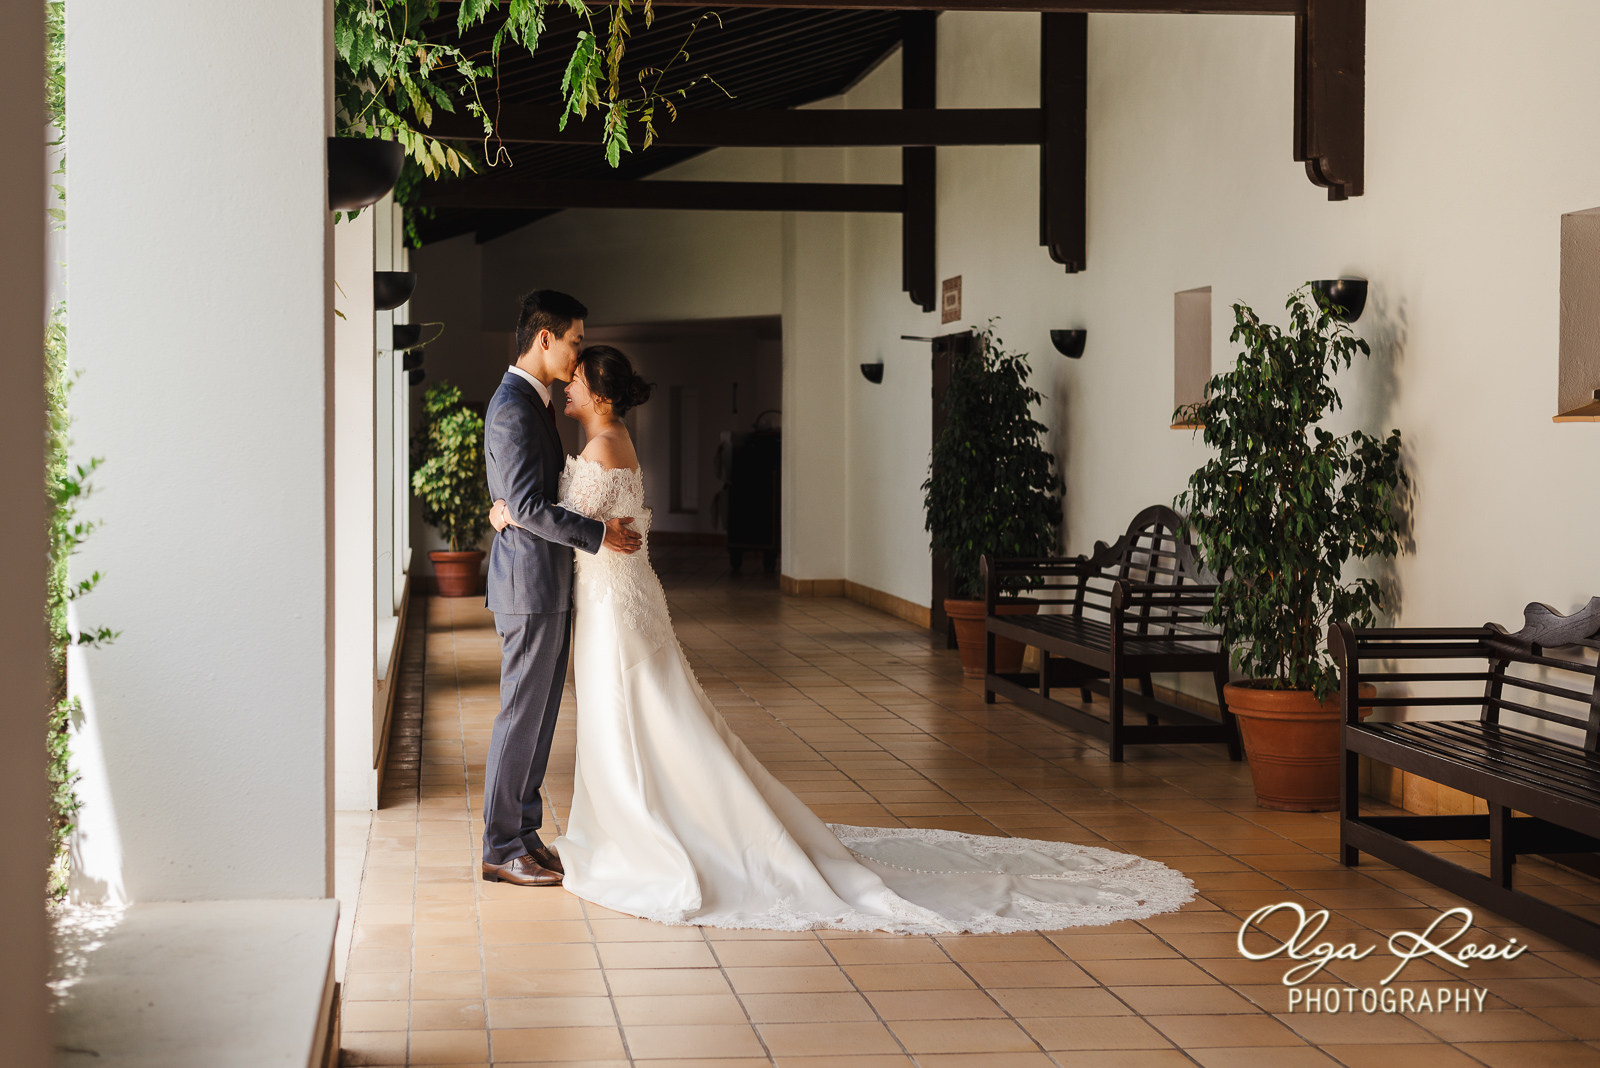 Wedding photographer at Pine Cliffs Resort, Algarve